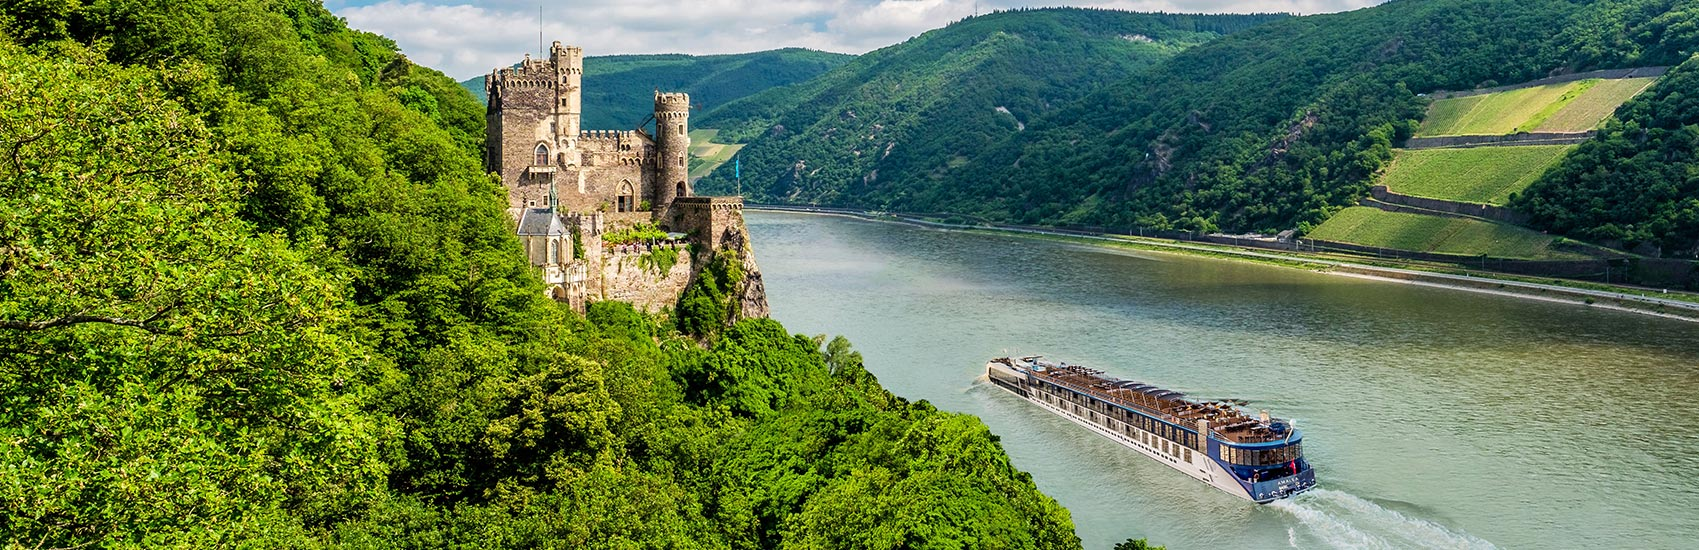 Exclusive 2-for-1 Cruise Savings on Select European River Cruises 2